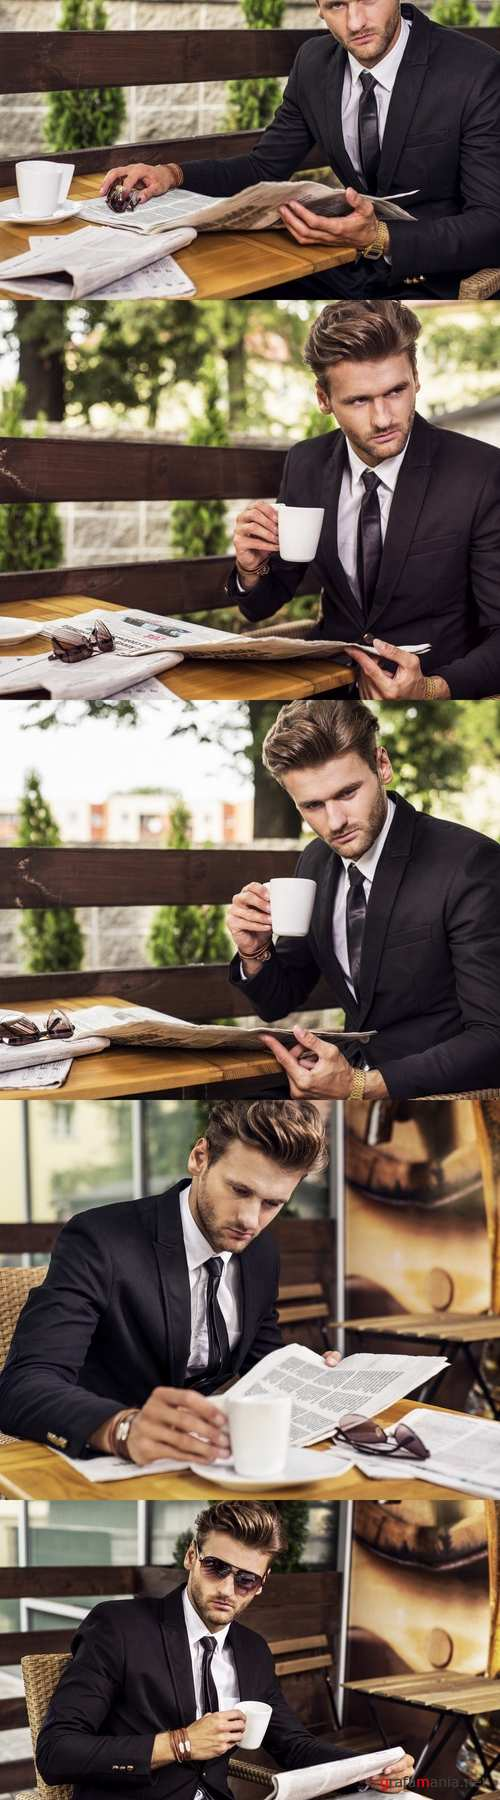 A man in a suit reading a newspaper and drinking coffee